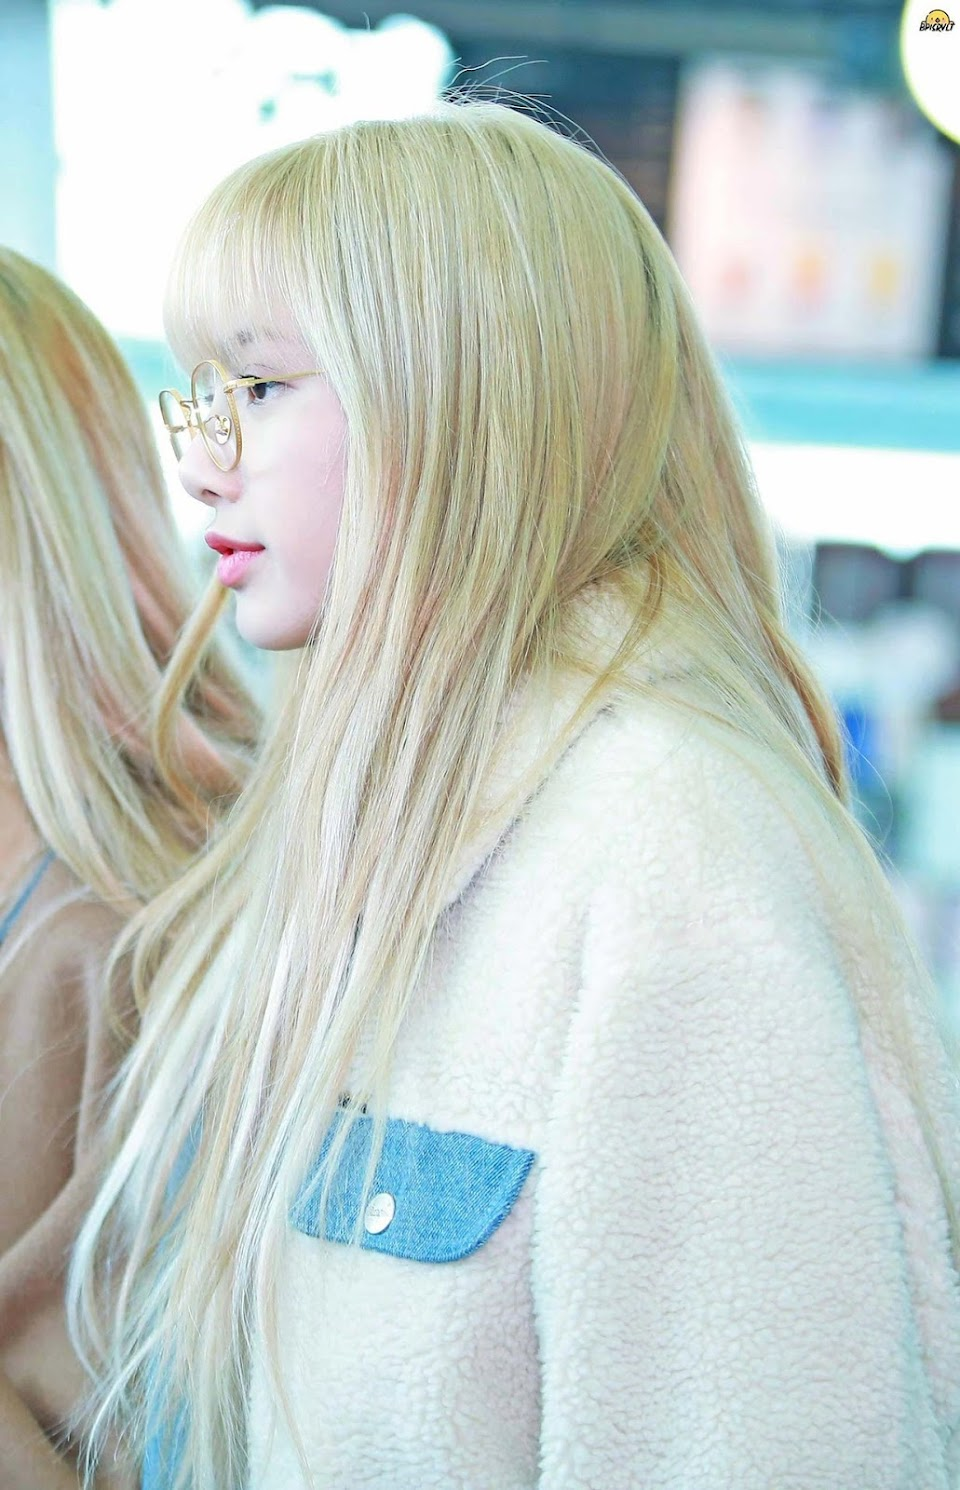 lisa glasses 23